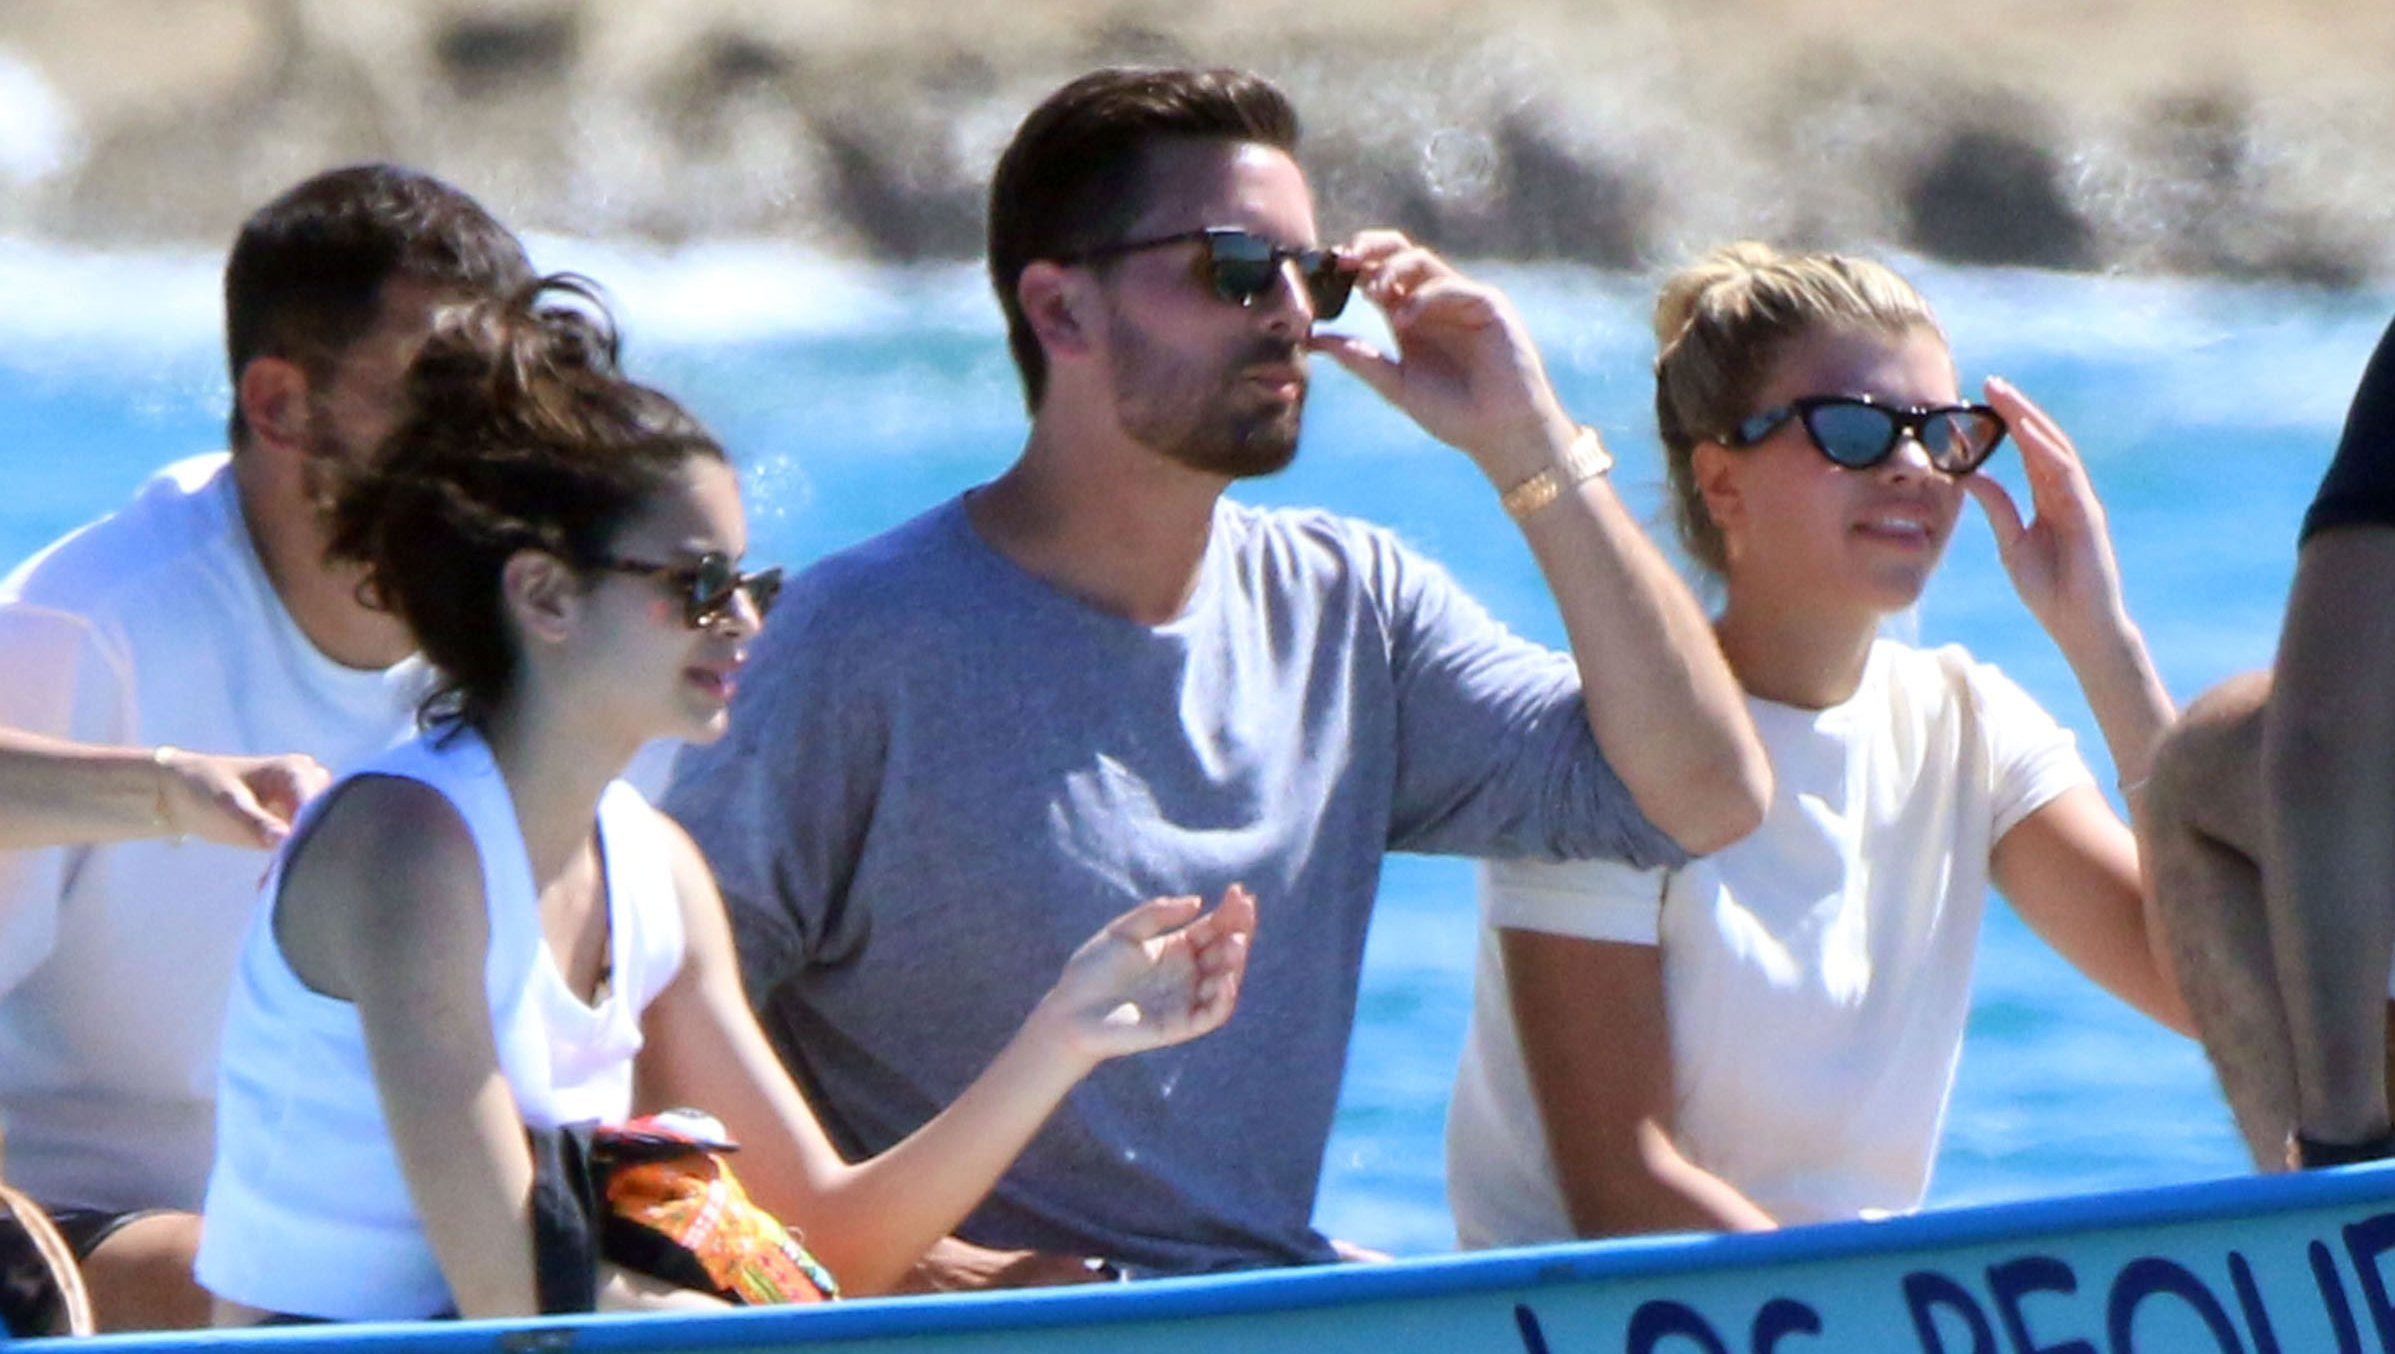 Scott Disick Sofia Richie vacation in Mexico